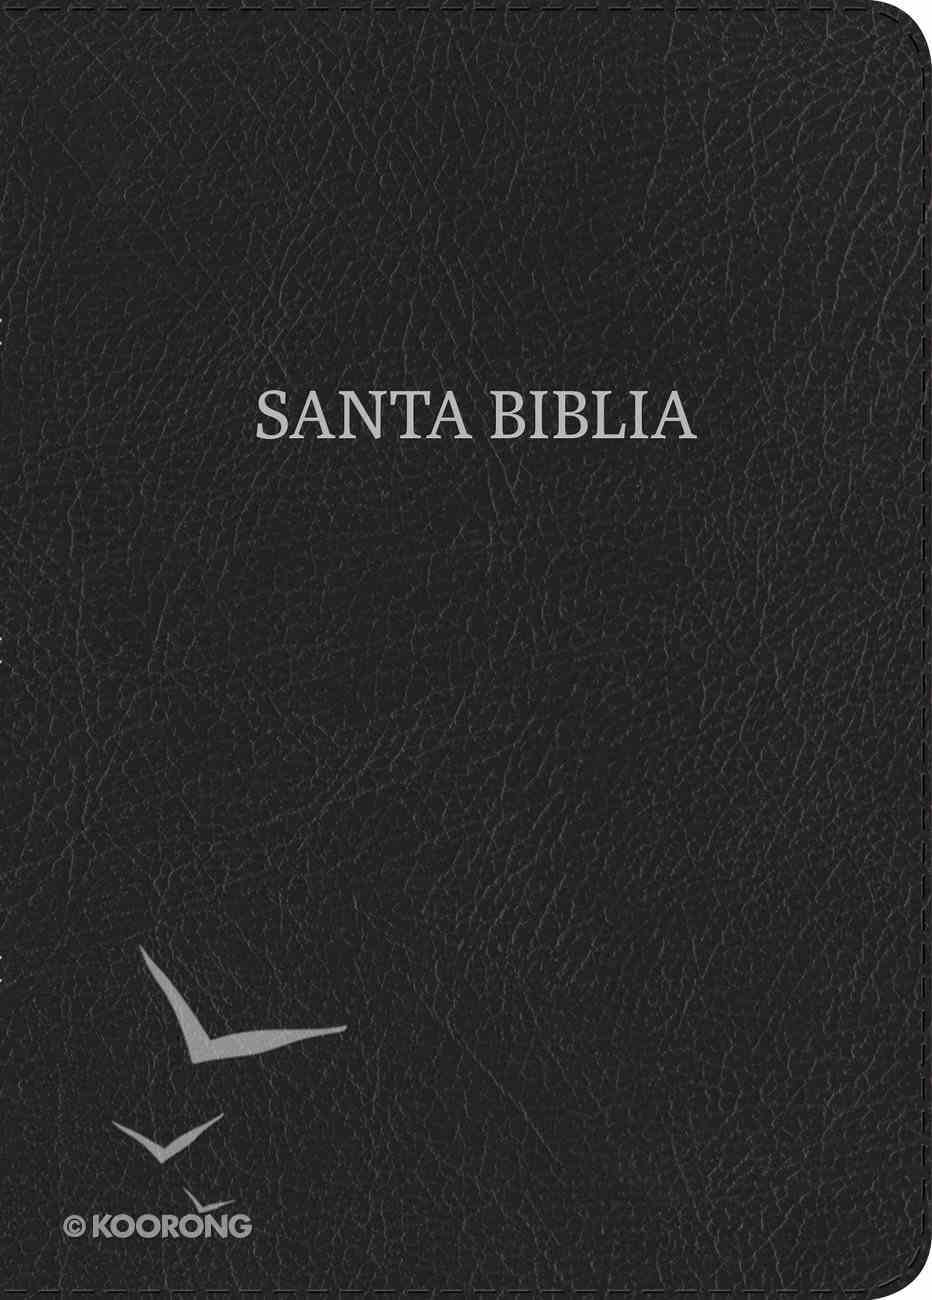 Rvr 1960 Biblia Letra Super Gigante Negro Con Indice (Red Letter Edition) (Super Giant Print, Indexed) Bonded Leather